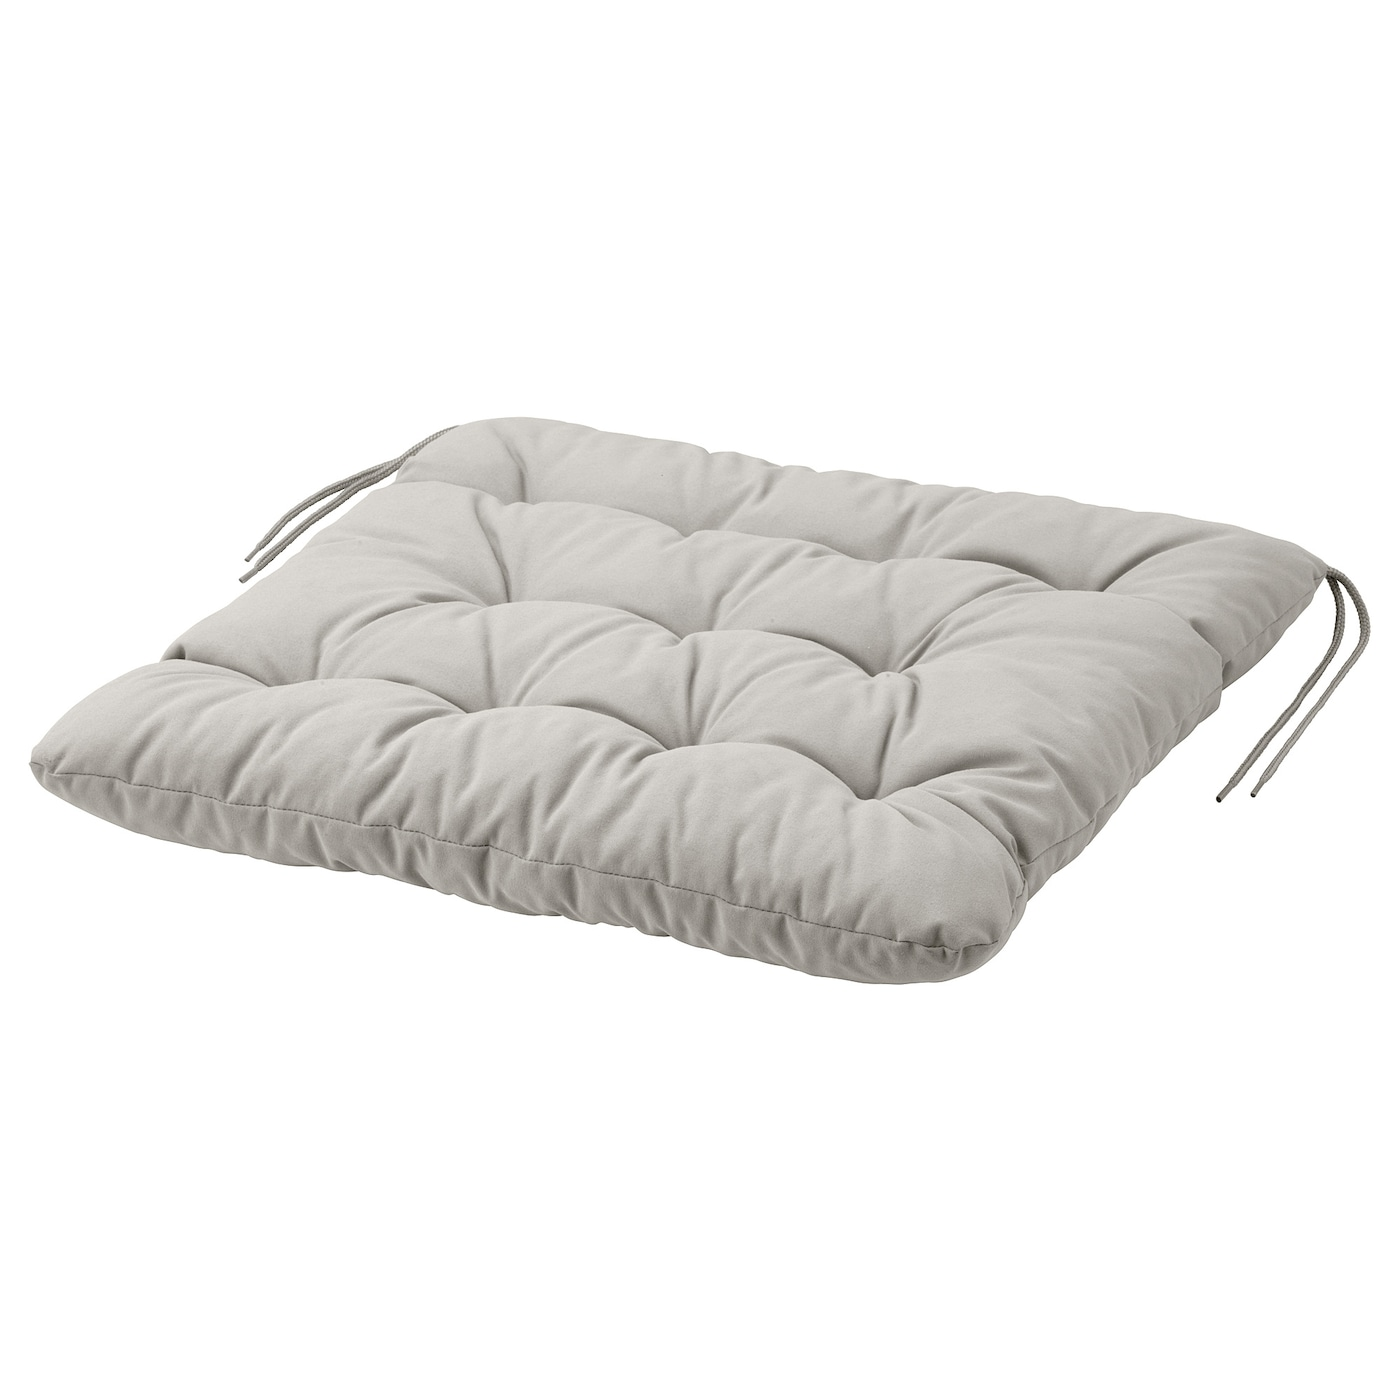 Ikea Kuddarna Chair Cushion Outdoor Ties Keep The Firmly In Place On